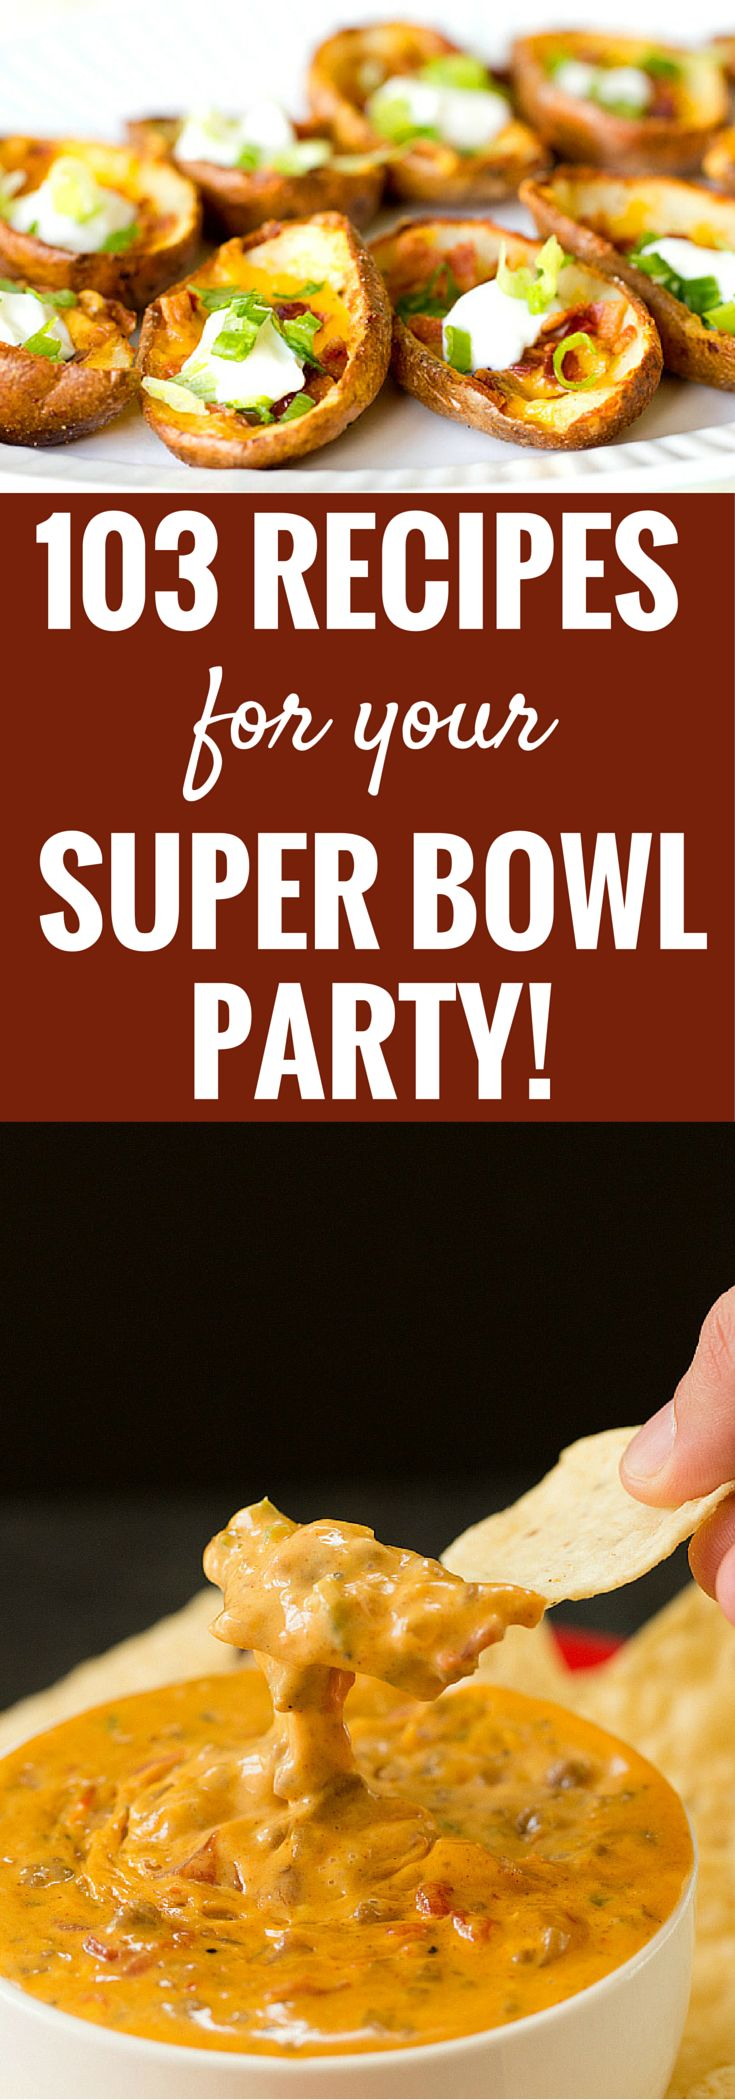 100 super bowl recipes on pinterest best superbowl food for Super bowl appetizers pinterest